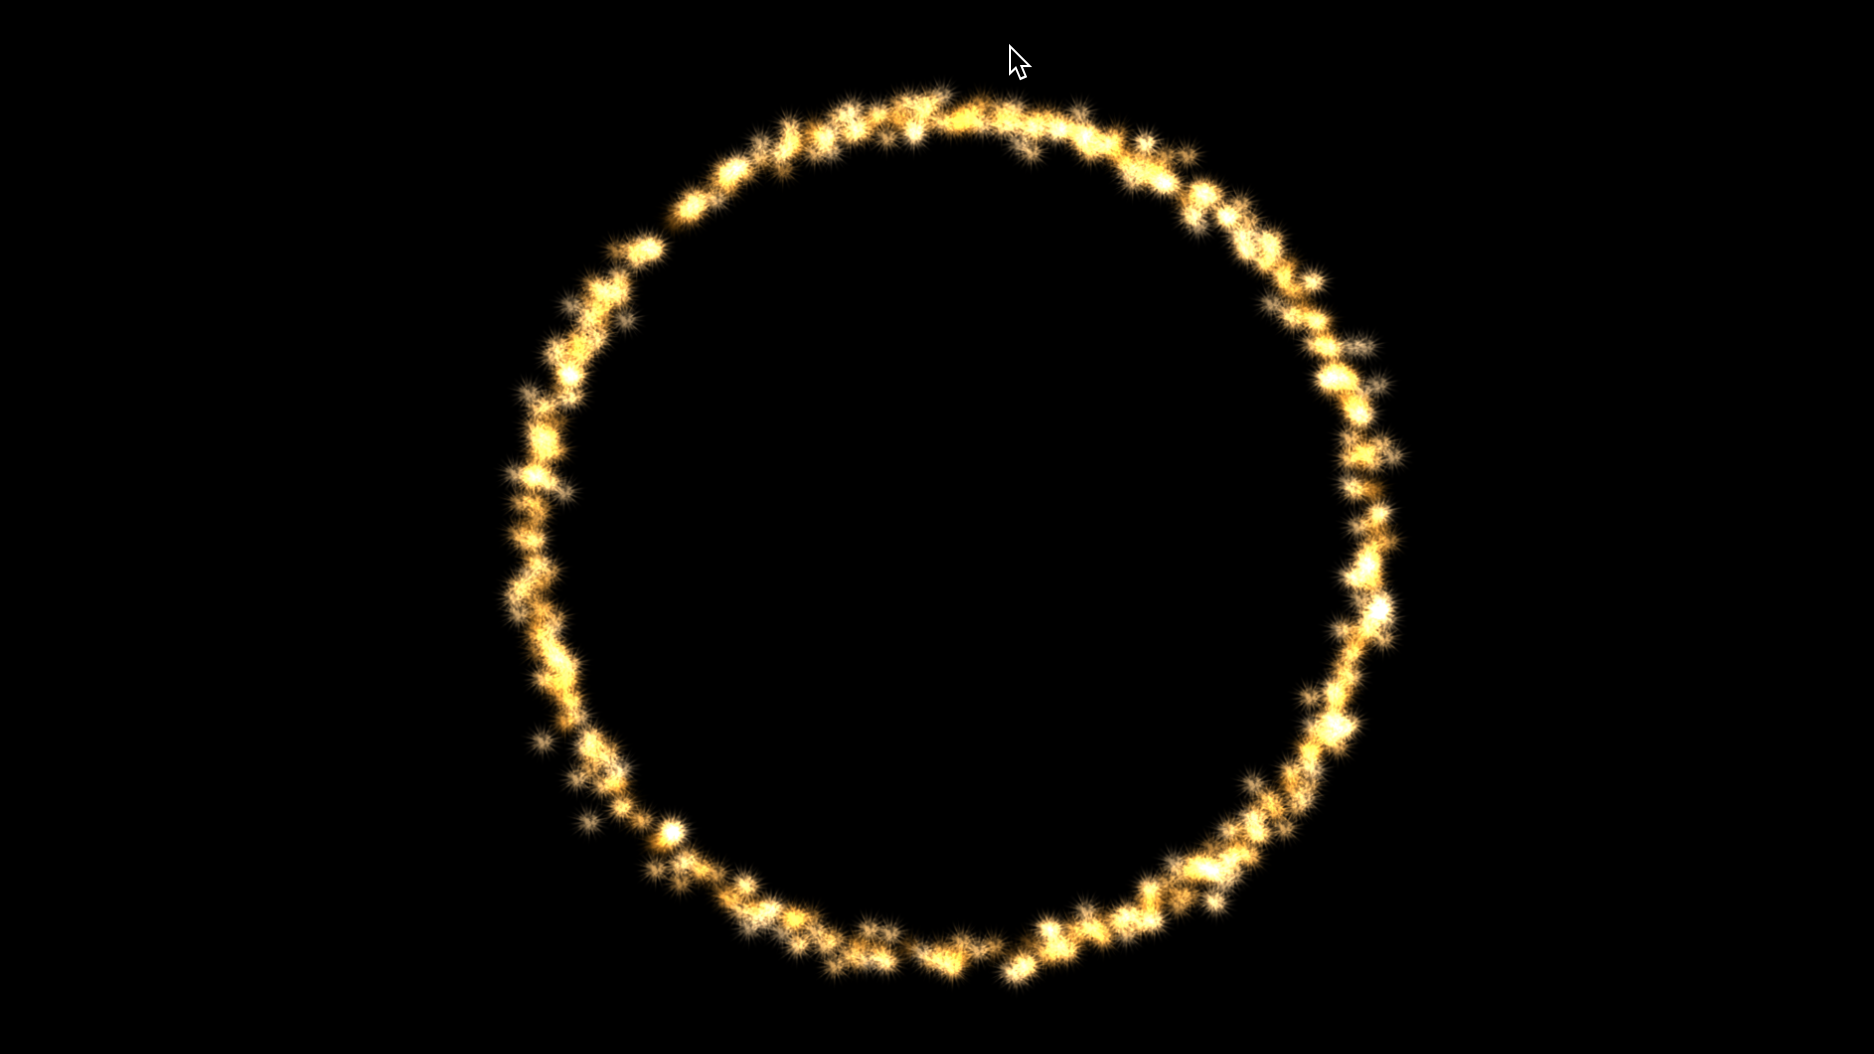 a ring shaped sparkler